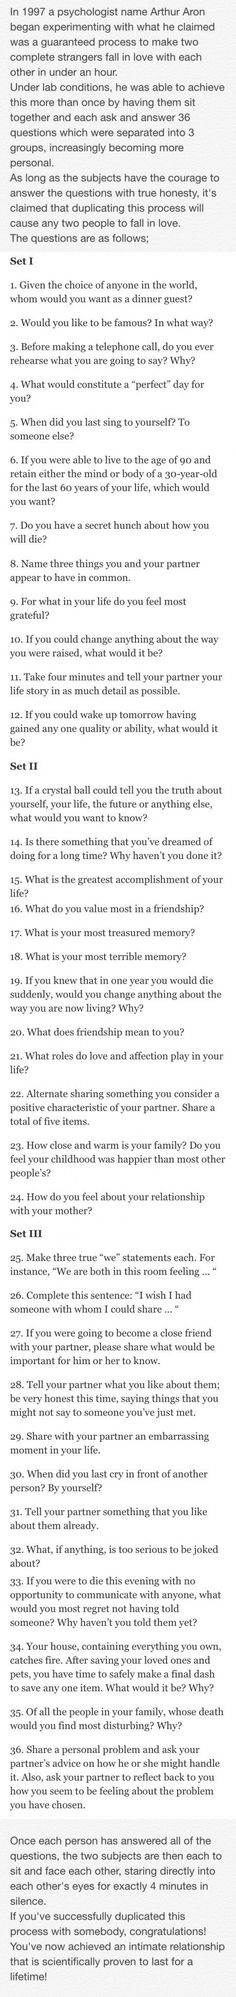 Questions to ask when getting to know someone. Great conversation starters.